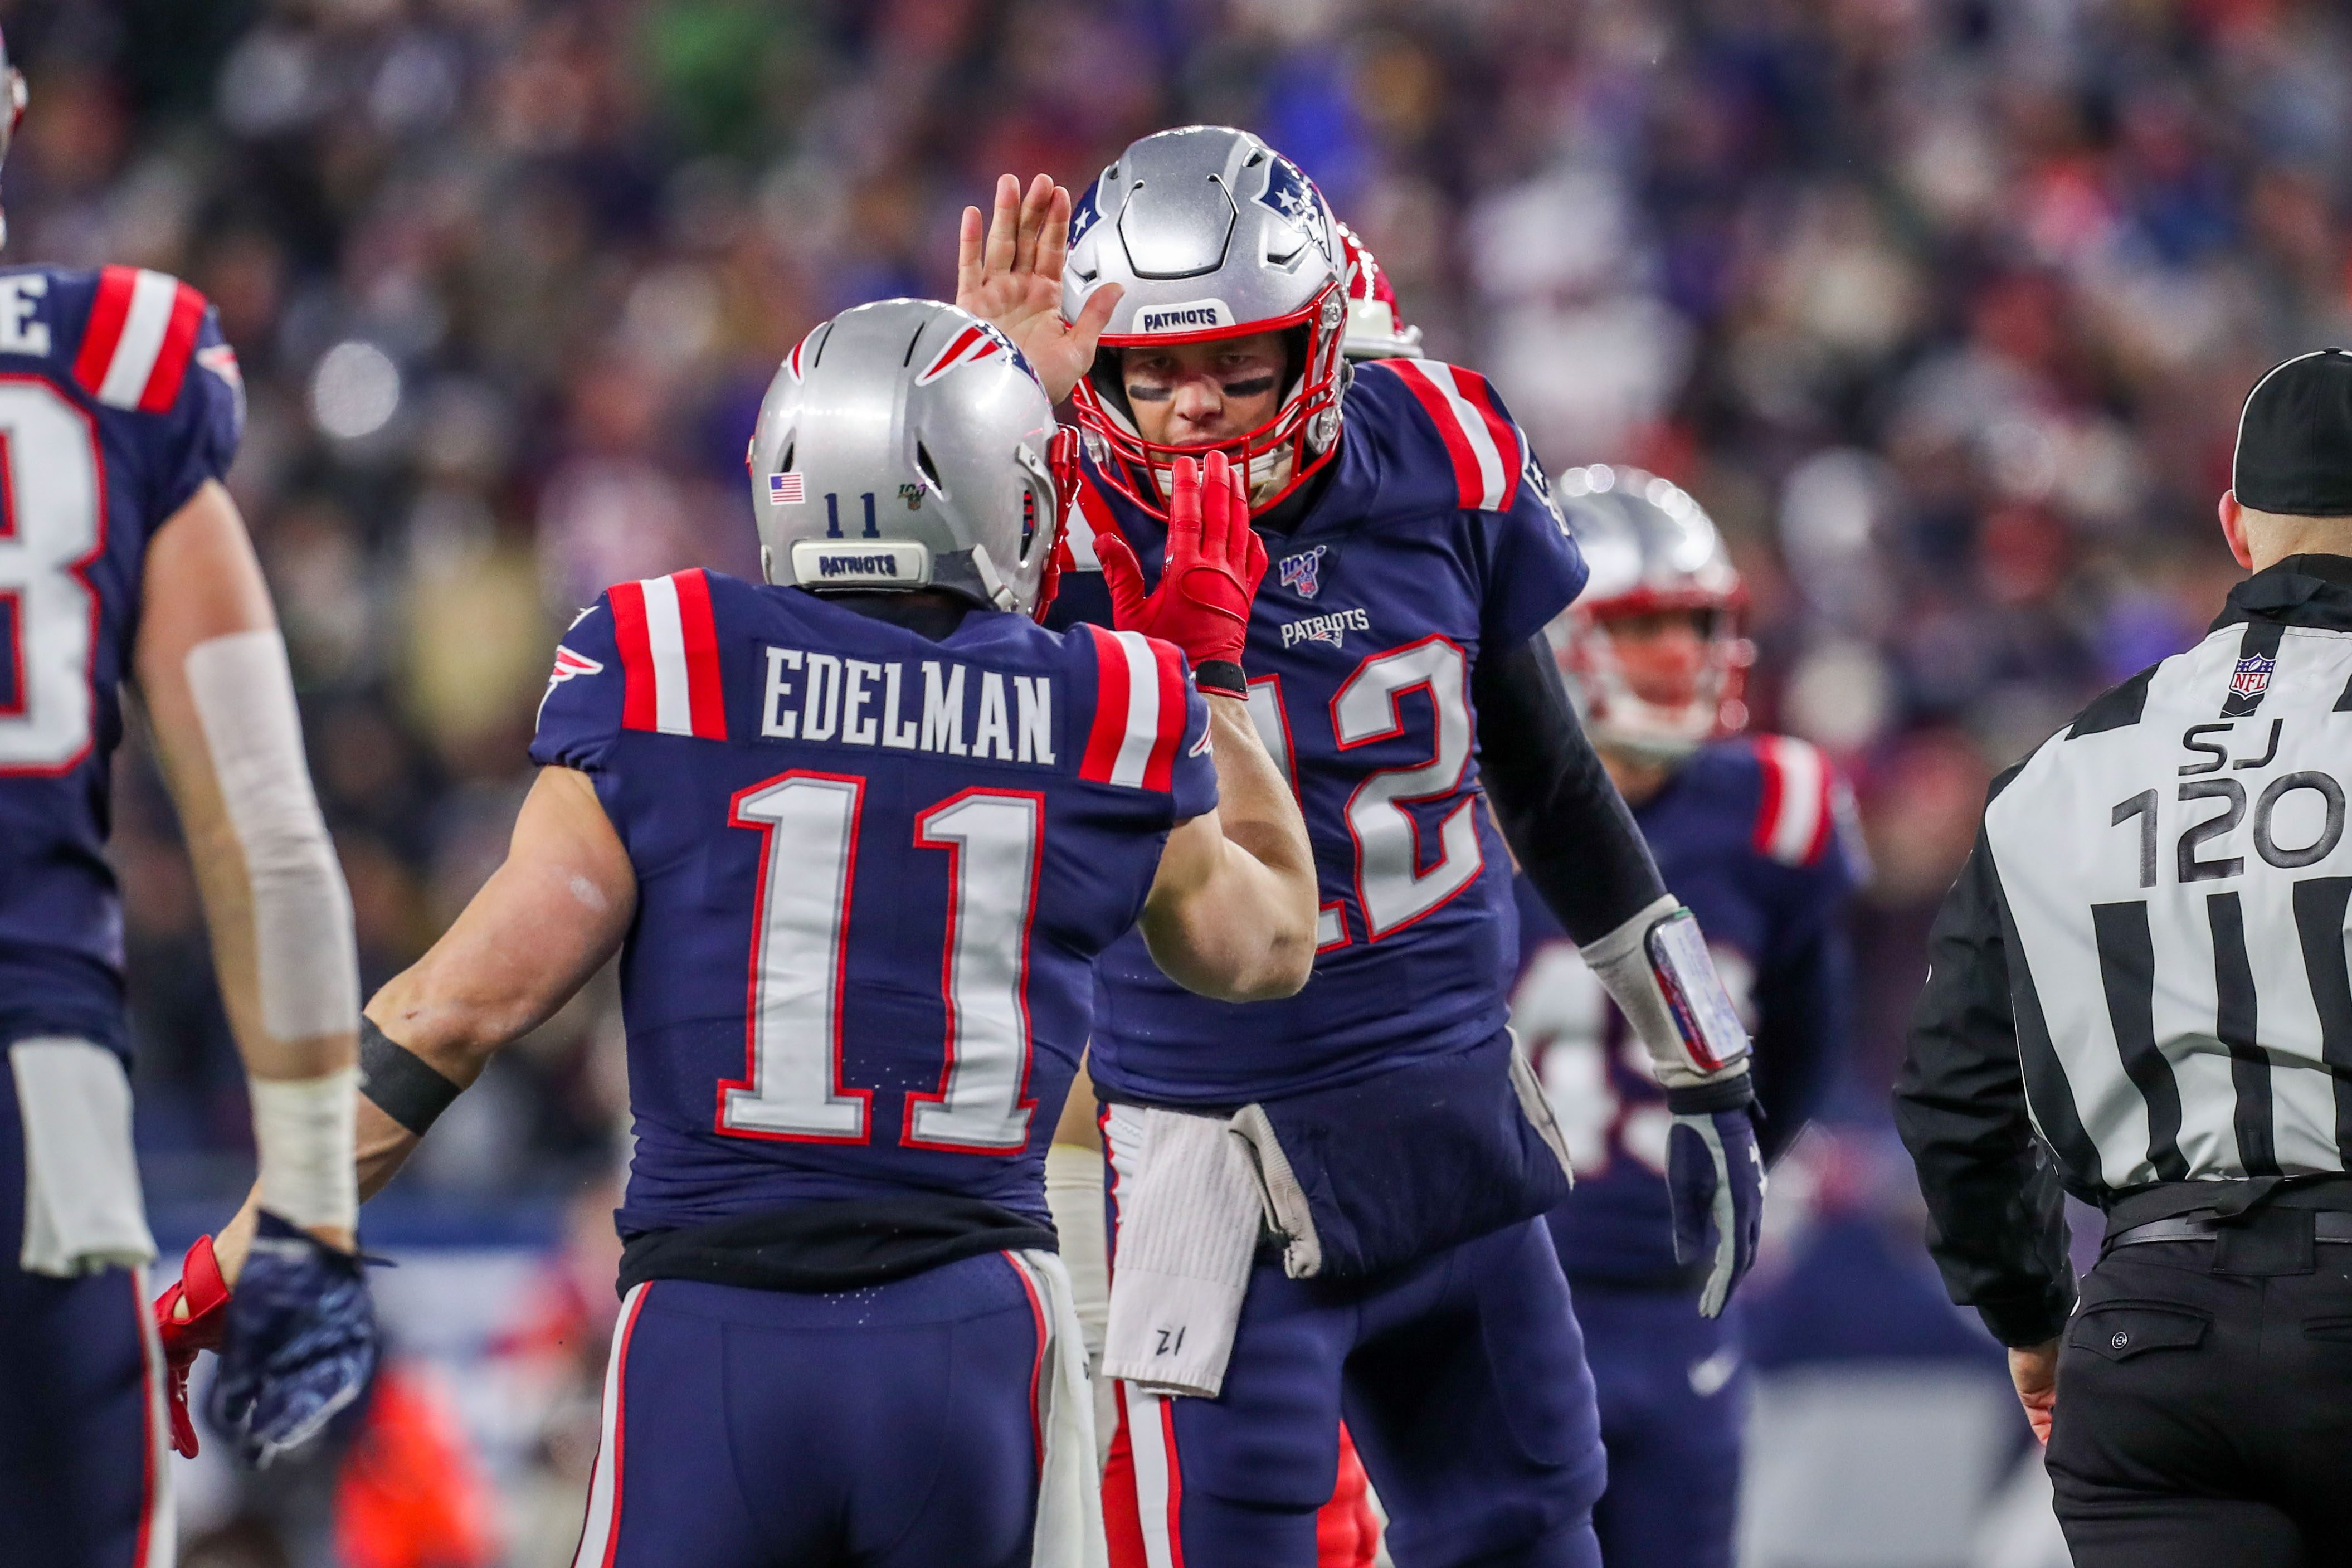 Brady's Reply to Edelman on Instagram Will Have Patriots Fans Smiling